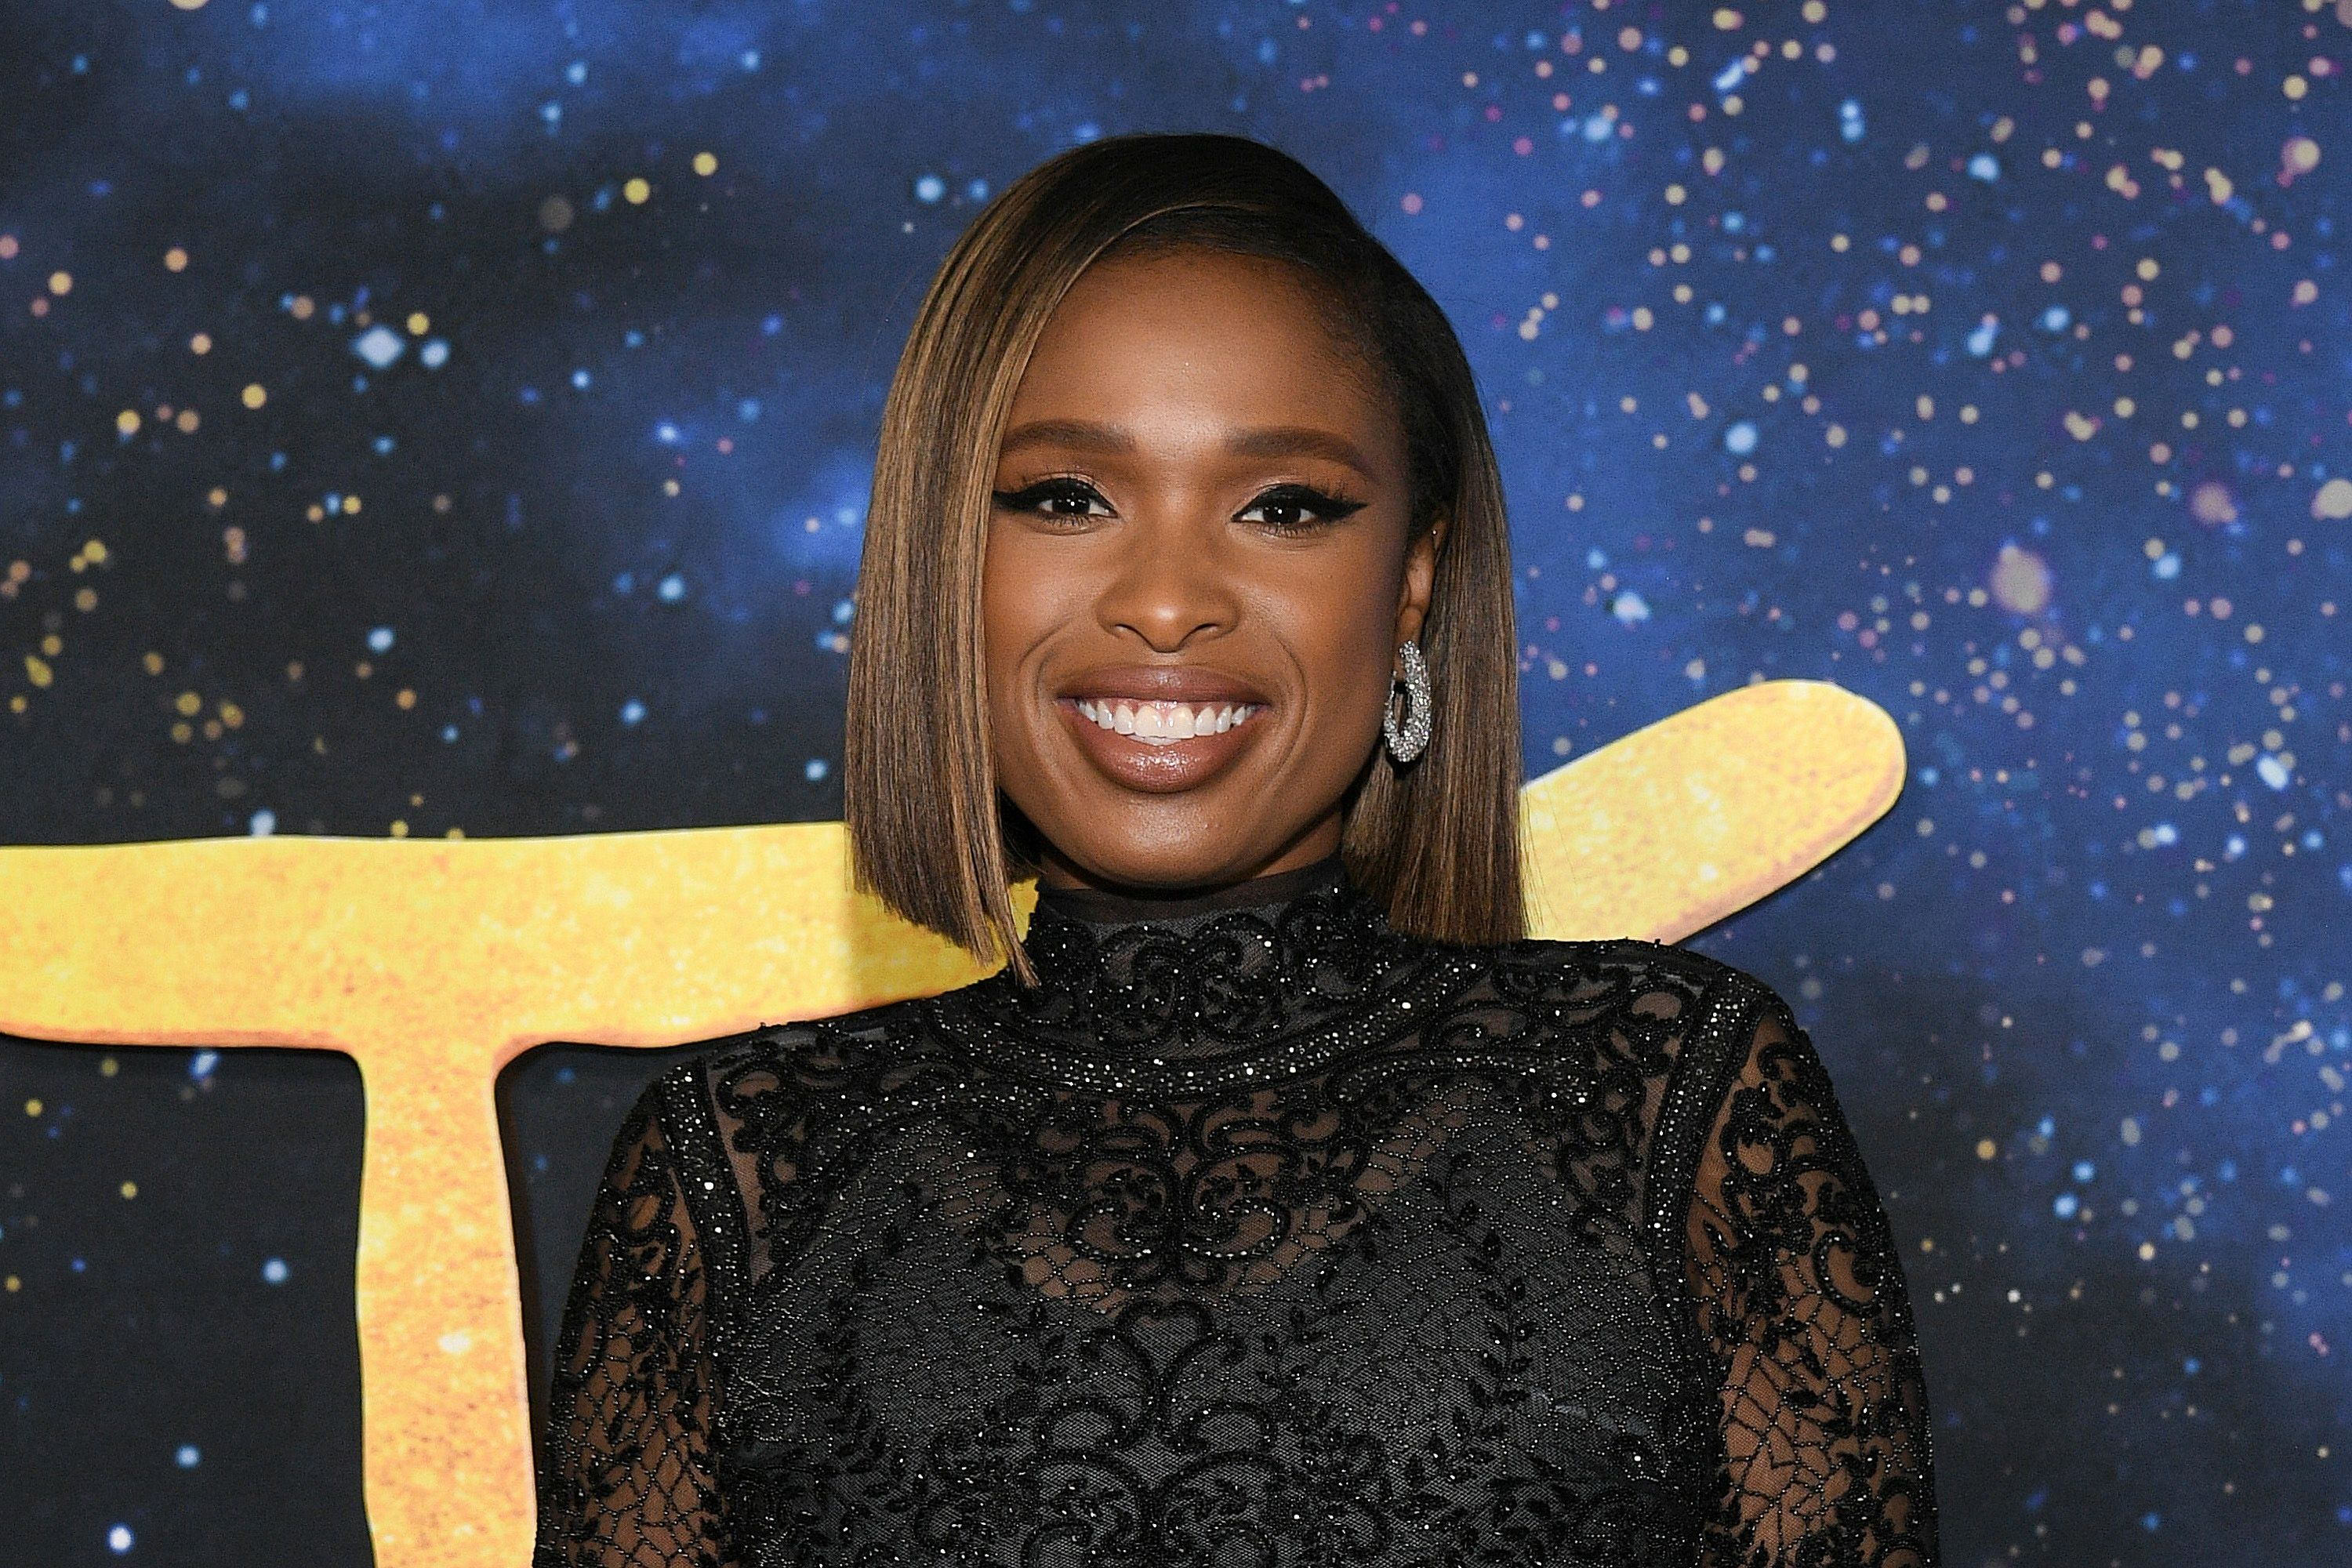 """Jennifer Hudson at the world premiere of """"Cats"""" on Dec. 16, 2019 in New York City   Source: Getty Images"""